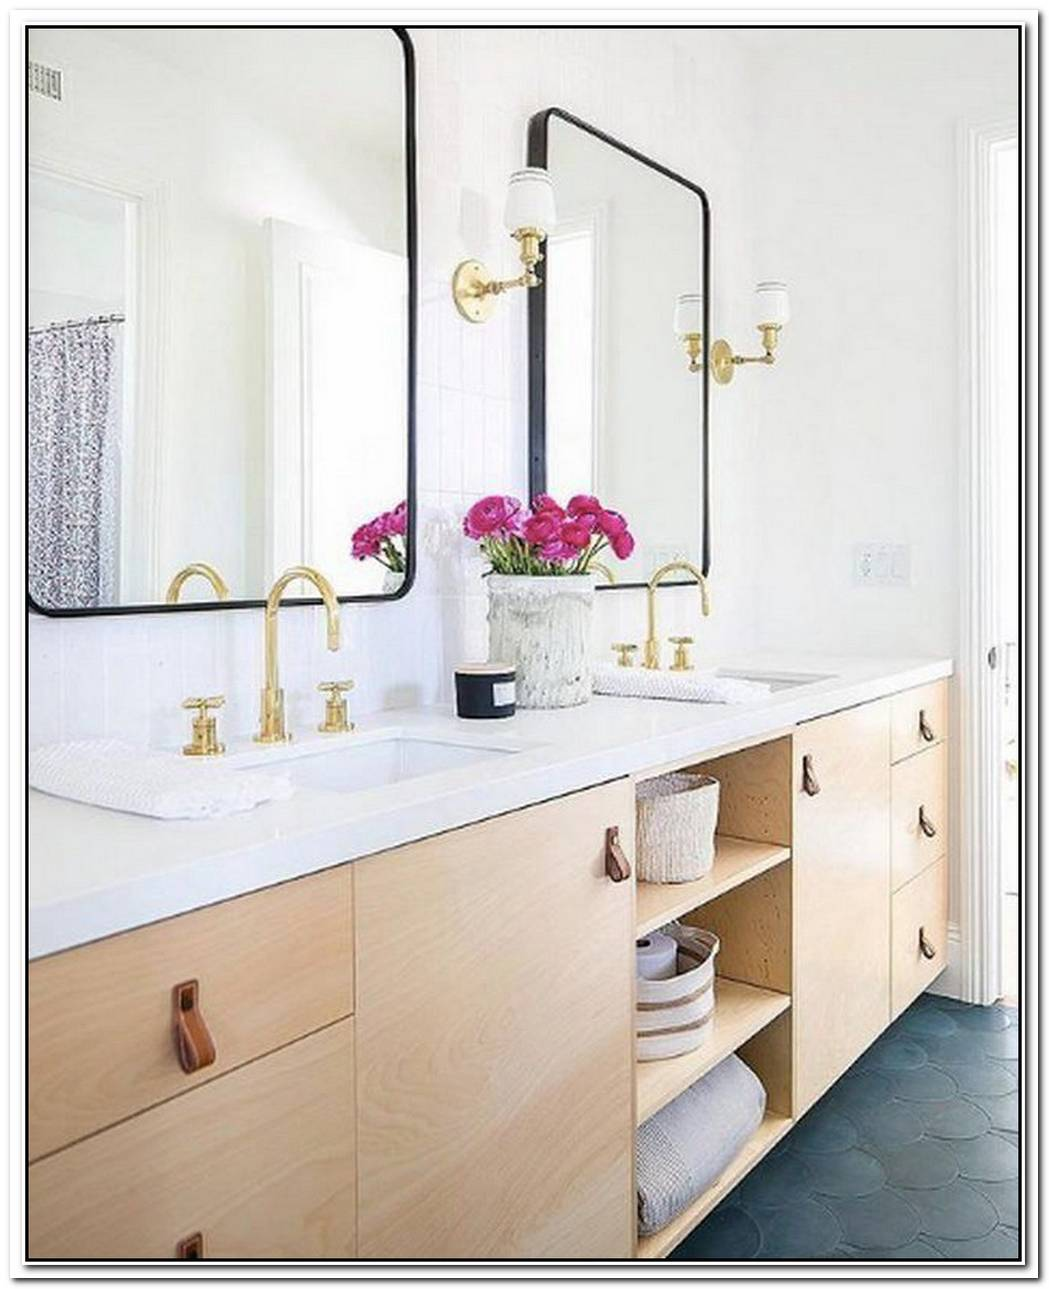 Decorative Details Complete A Clean And Symmetrical Bathroom